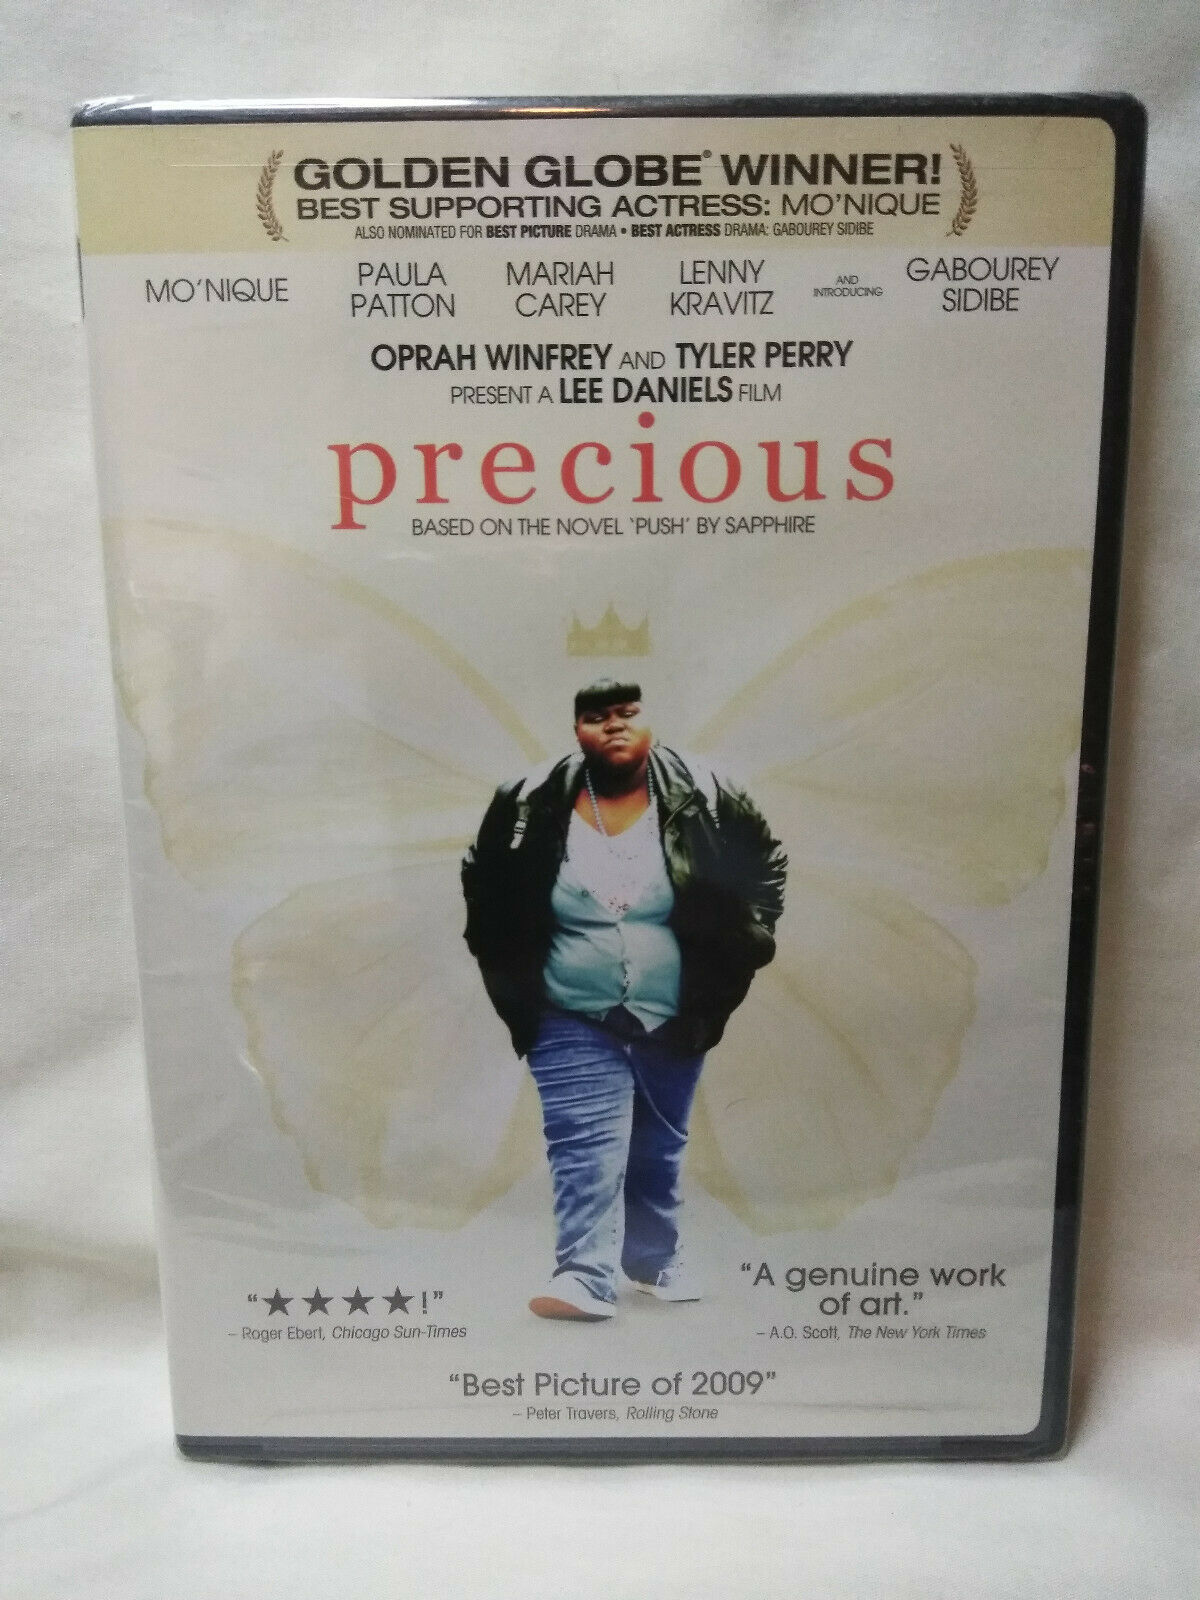 Precious: Based on the Novel PUSH by Sapphire (DVD, 2010) New Sealed